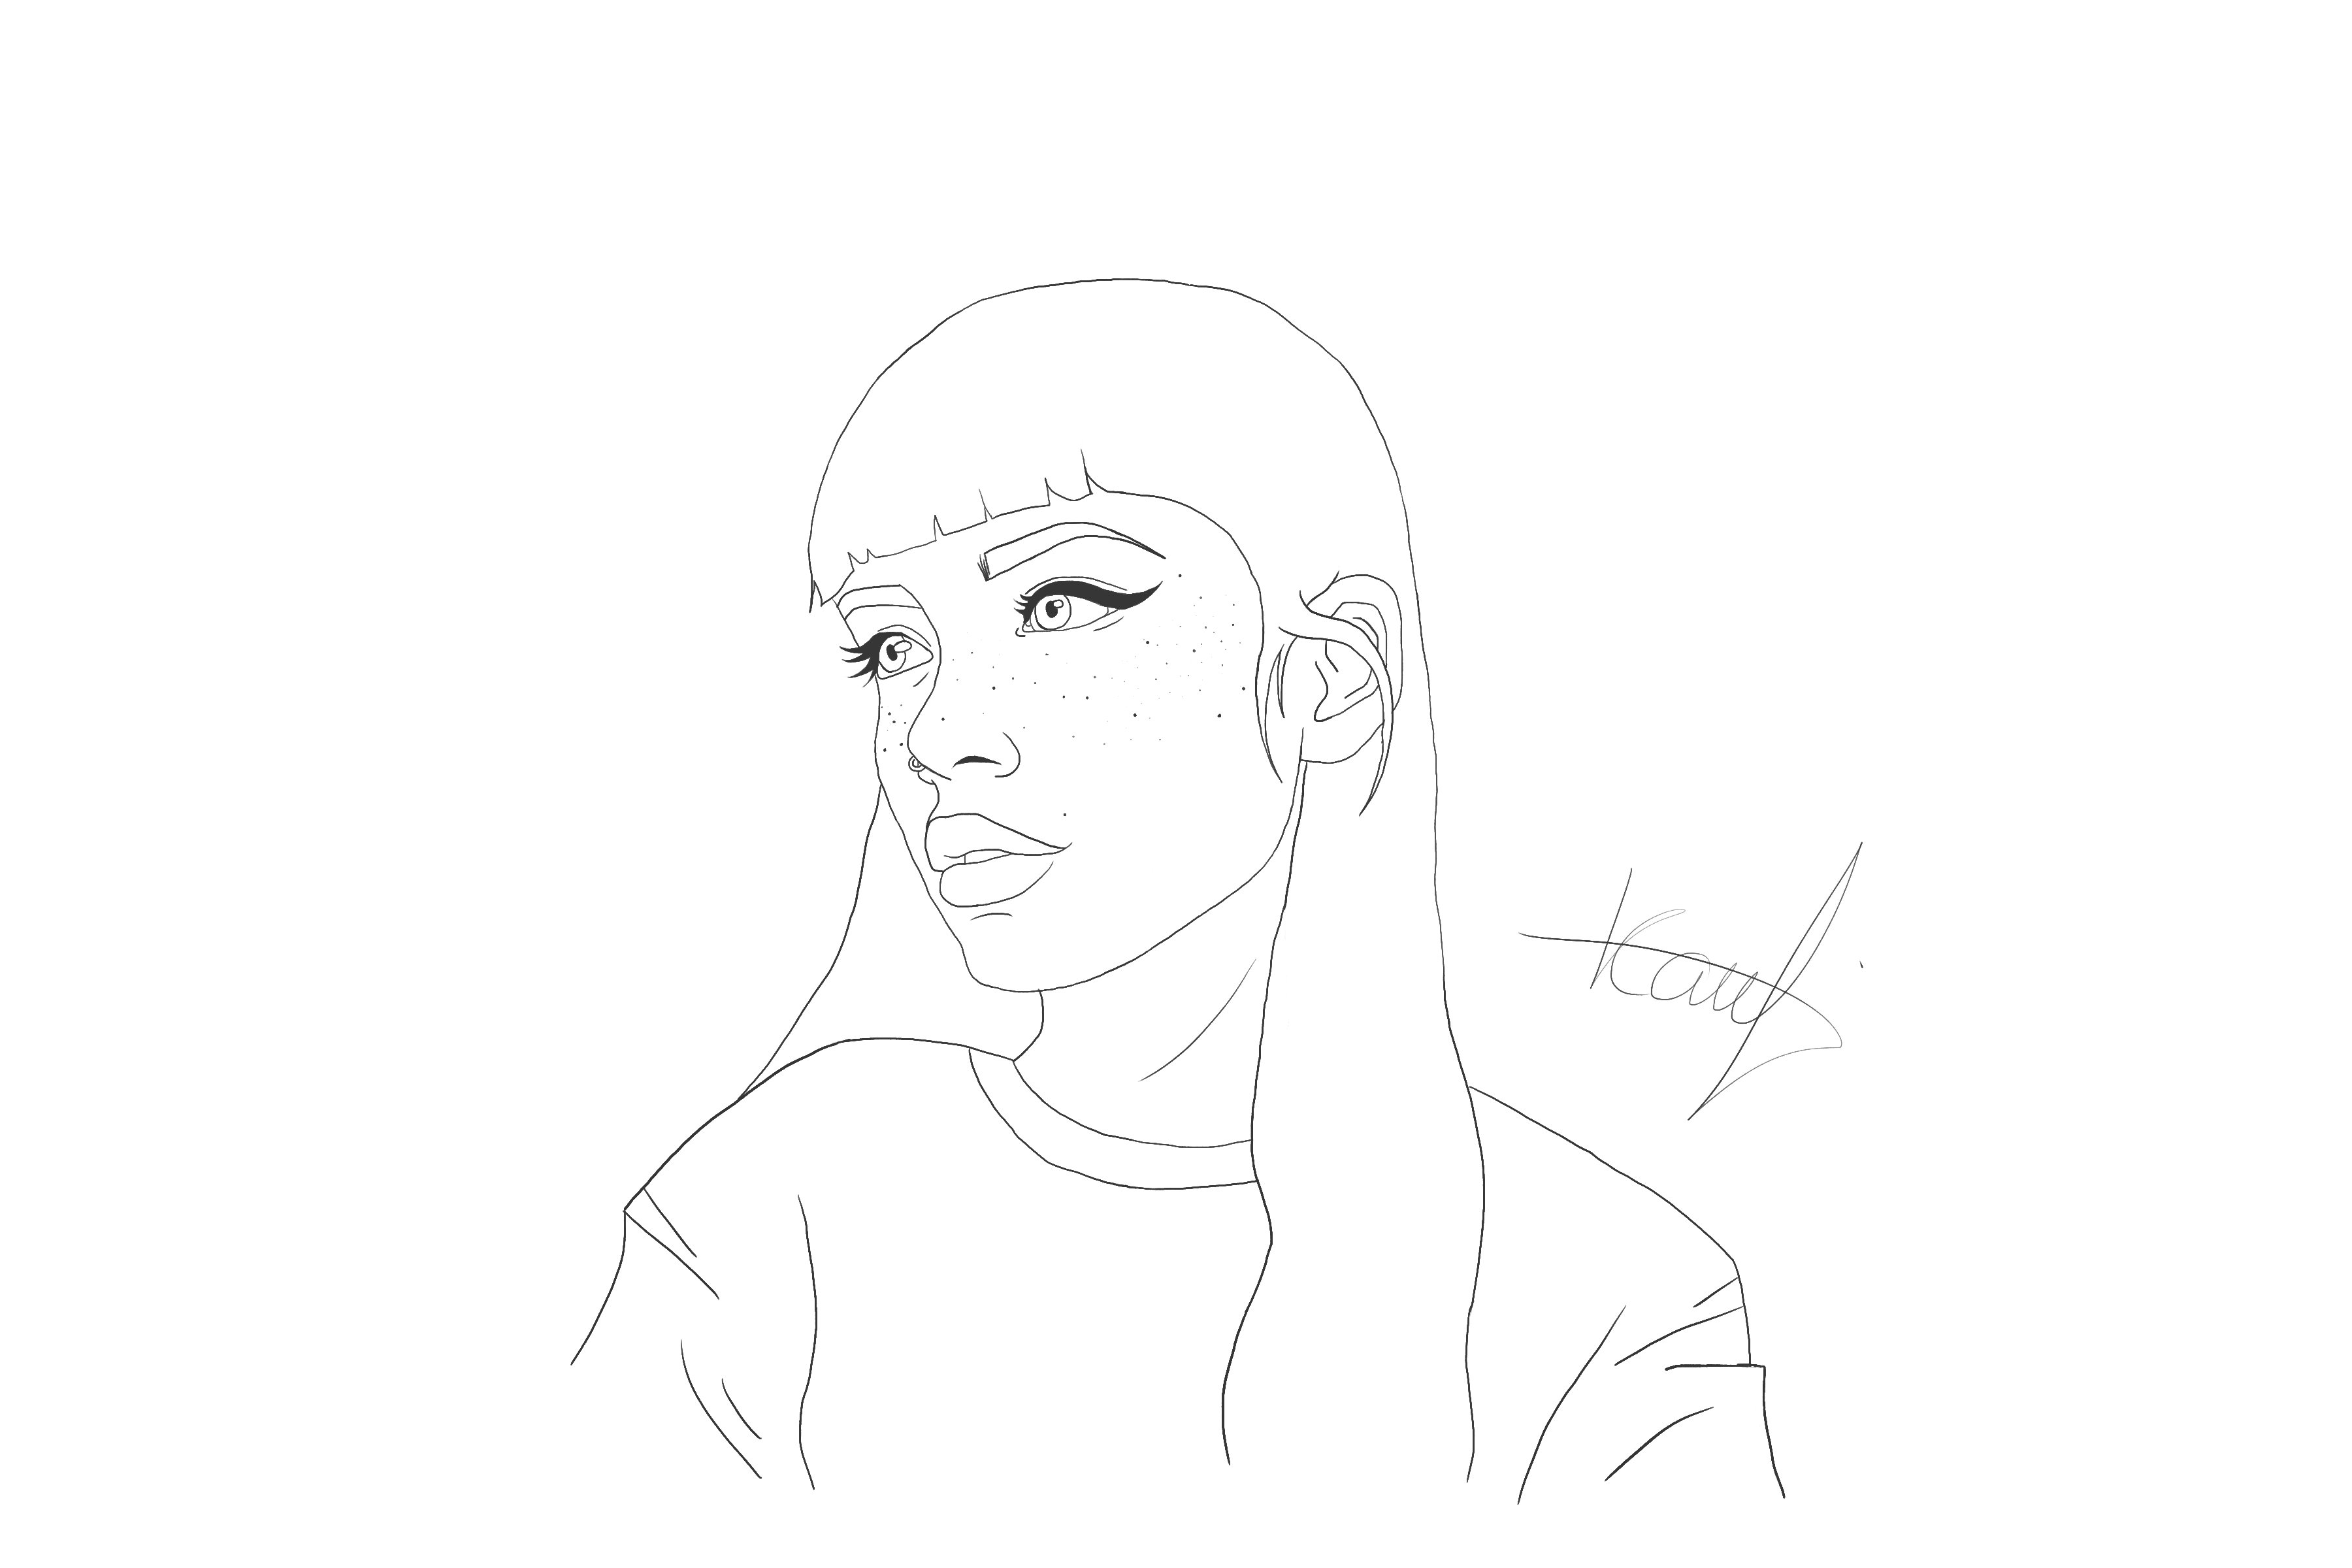 Digital Painting Without Lineart : Digital lineart by kylievaandrager on deviantart